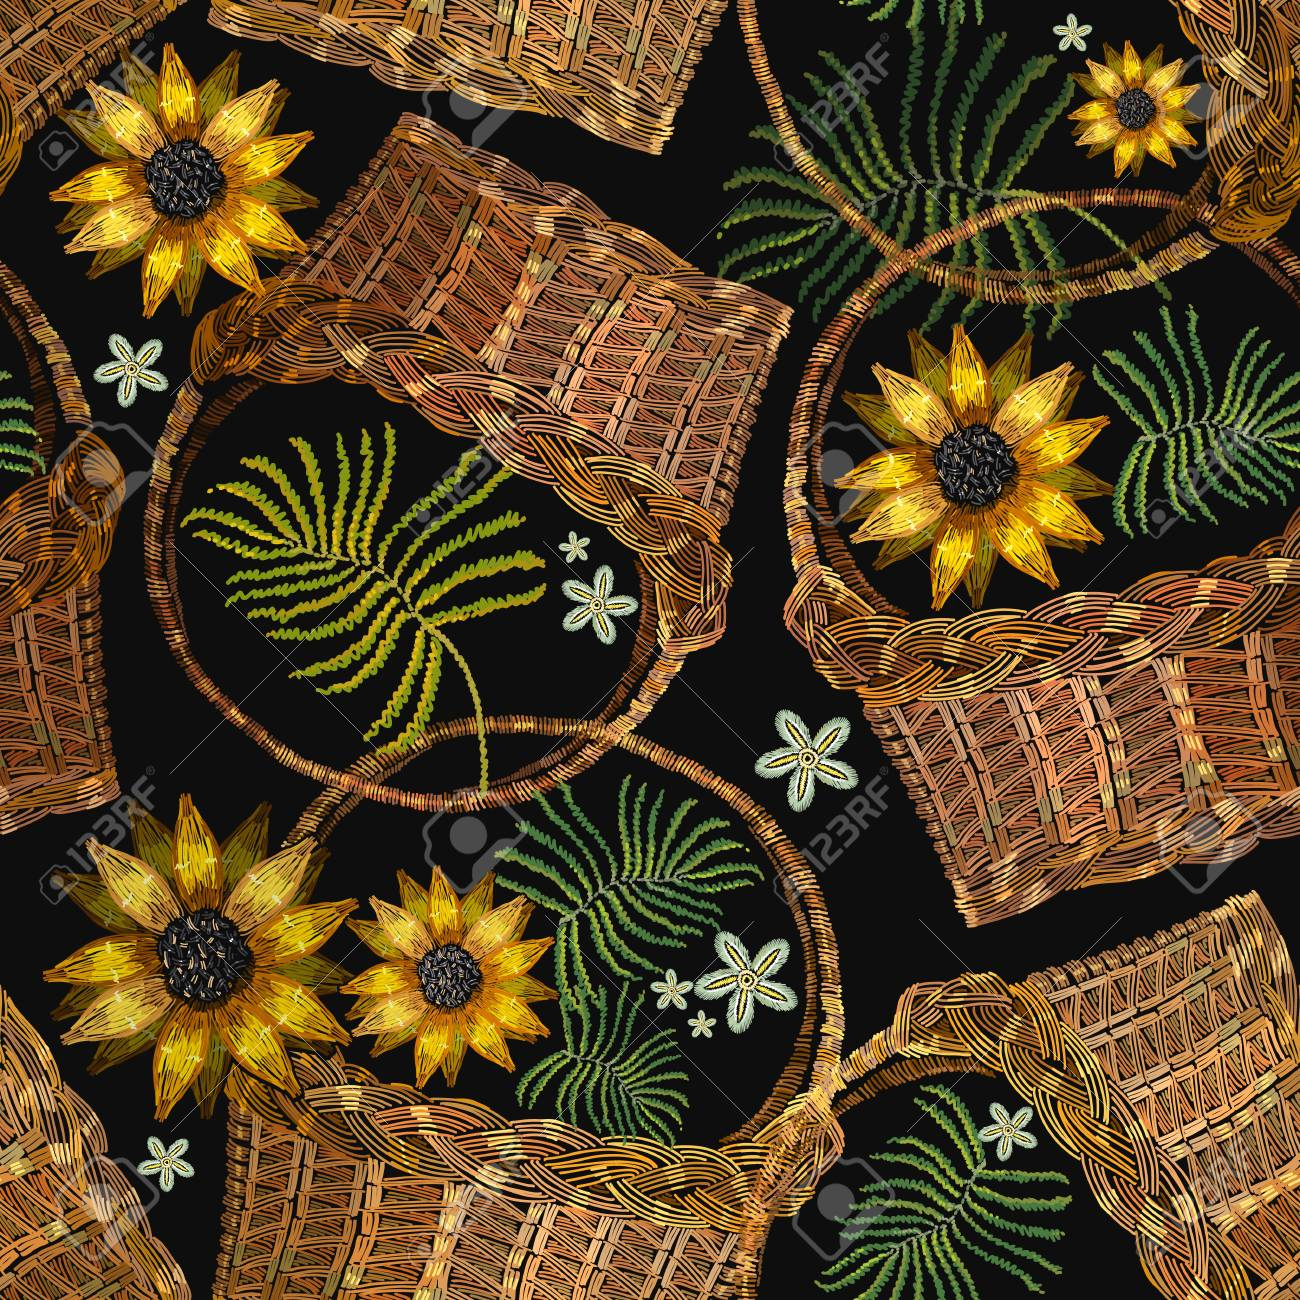 Embroidery Wicker Baskets And Sunflowers. Garden Background ...